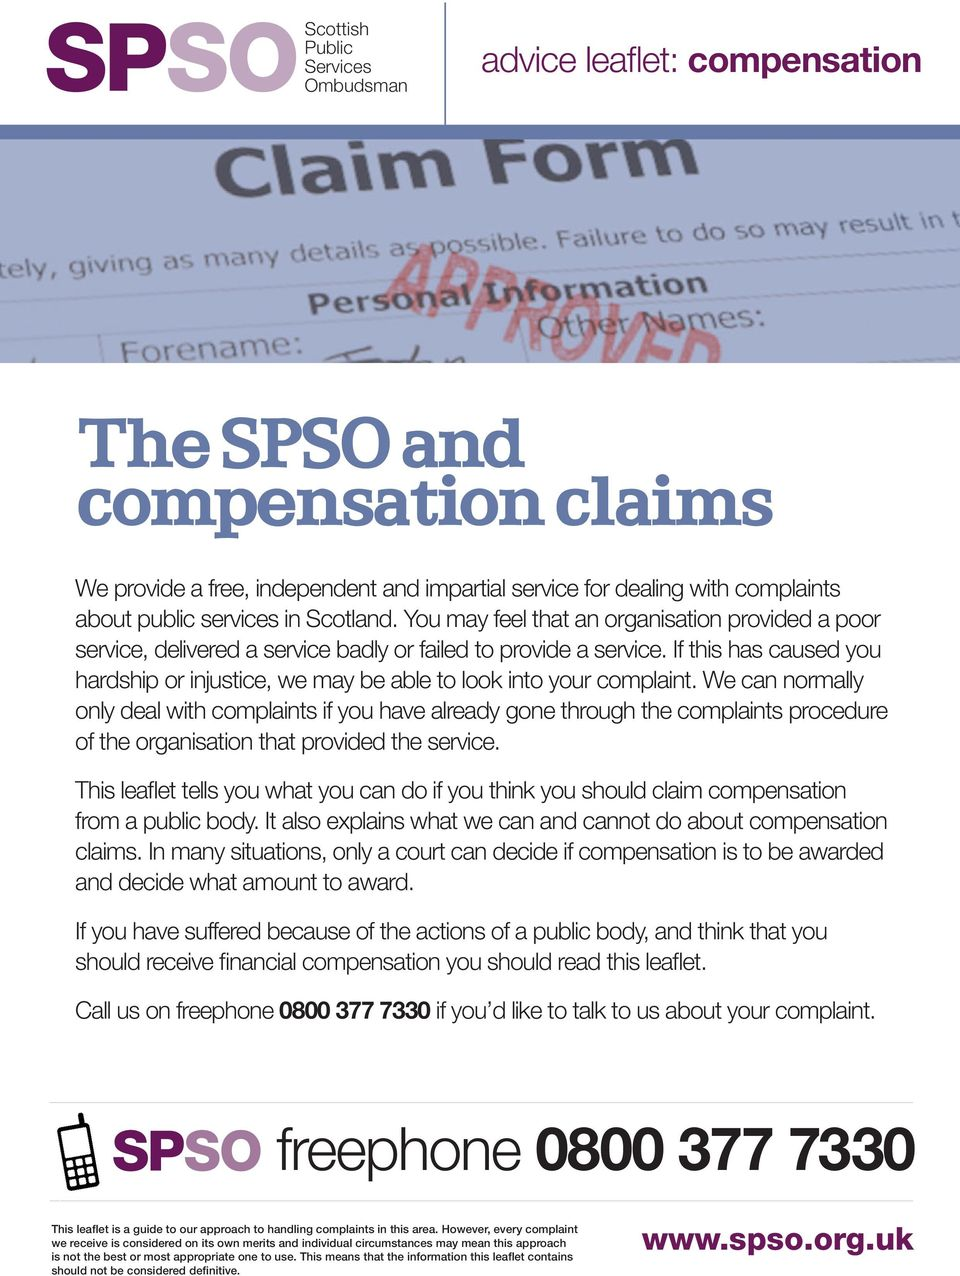 If this has caused you hardship or injustice, we may be able to look into your complaint.